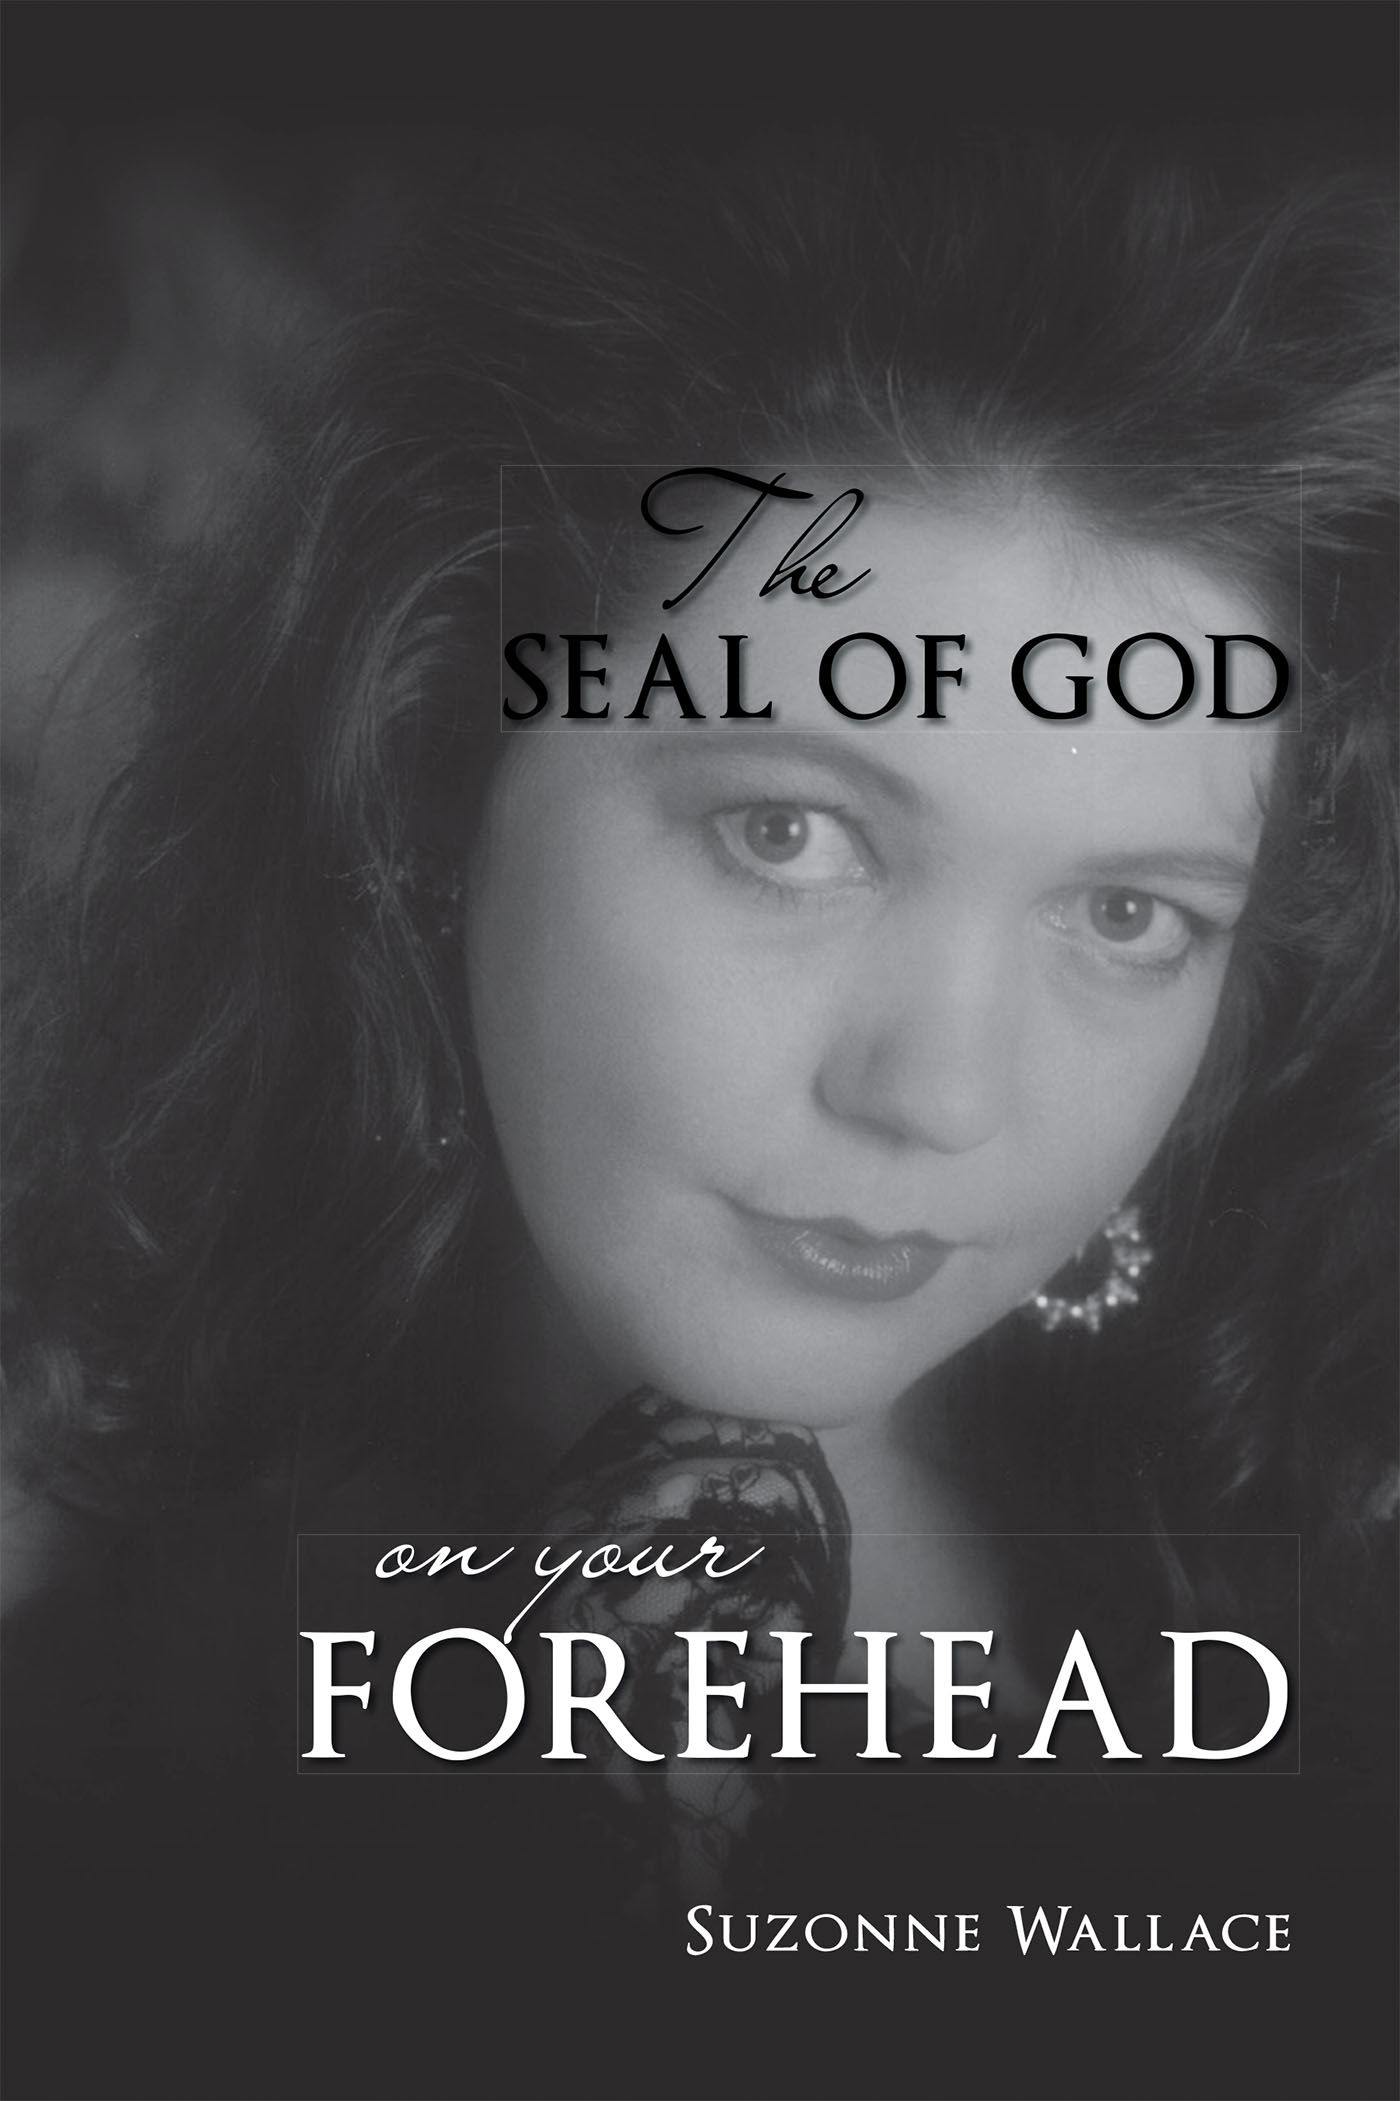 Suzonne Wallaces new book The Seal Of God On Your Forehead is a religious and emotional work